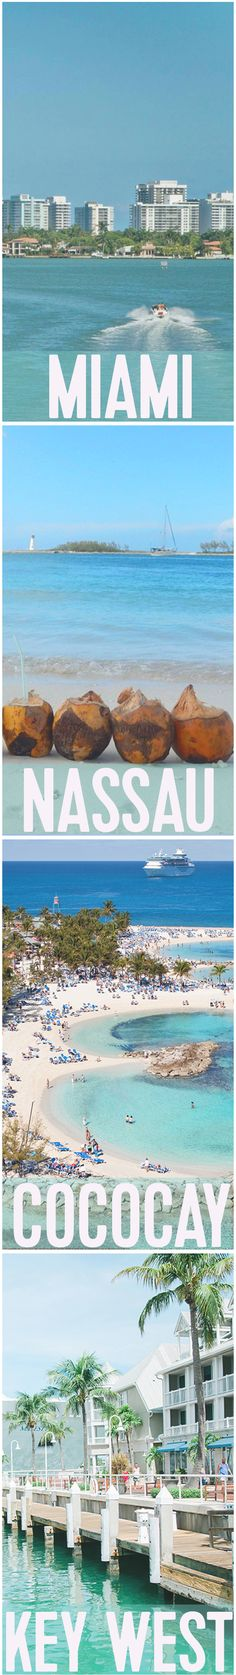 Enchantment of the Seas | Being one of the most popular Royal Caribbean itineraries, you'll be able to explore the world-famous Miami Beach one day, and adventure through the breathtaking Bahamian wilderness the next.